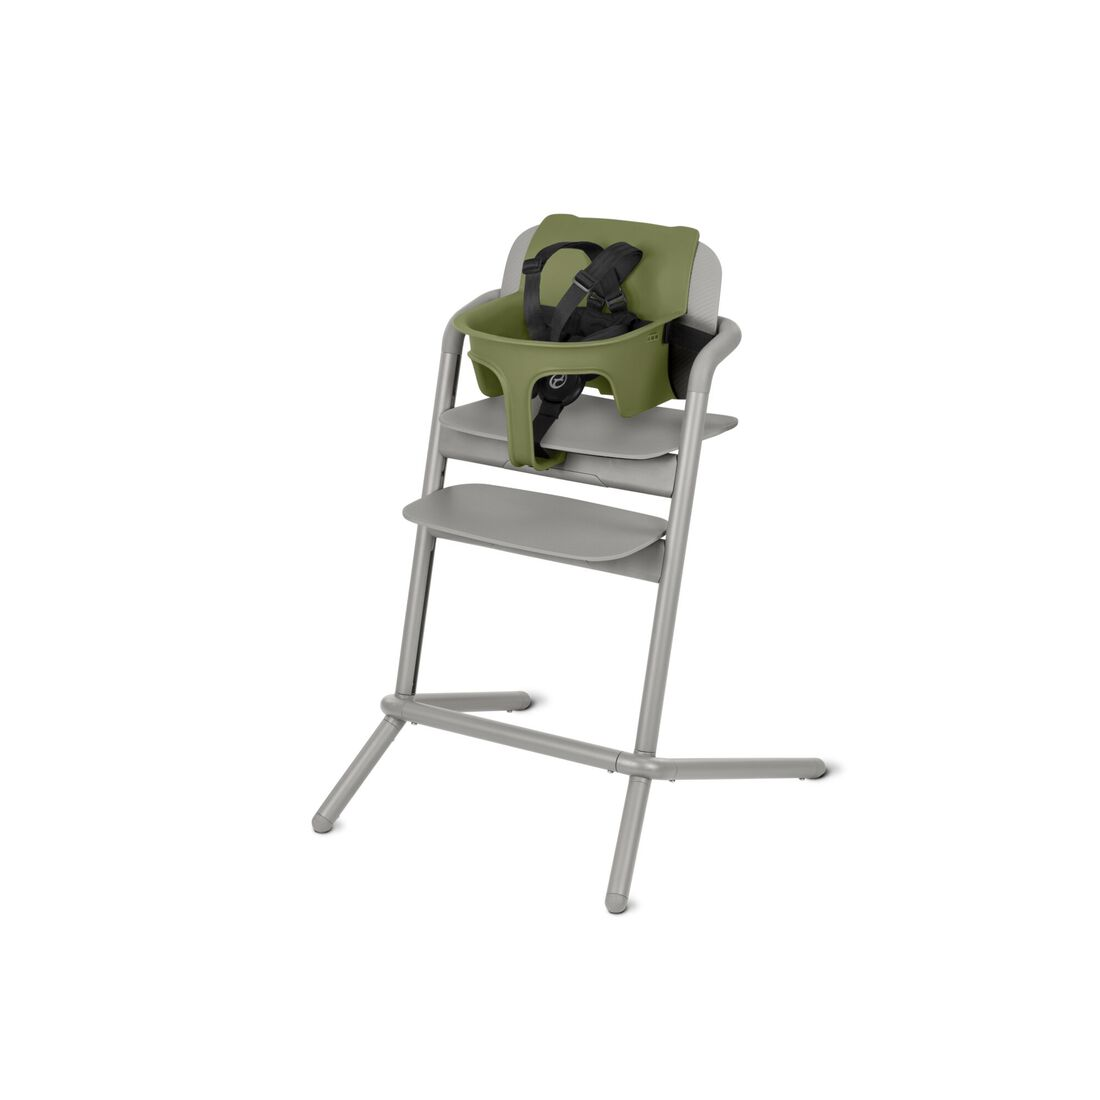 CYBEX Lemo Baby Set 2 - Outback Green in Outback Green large image number 1